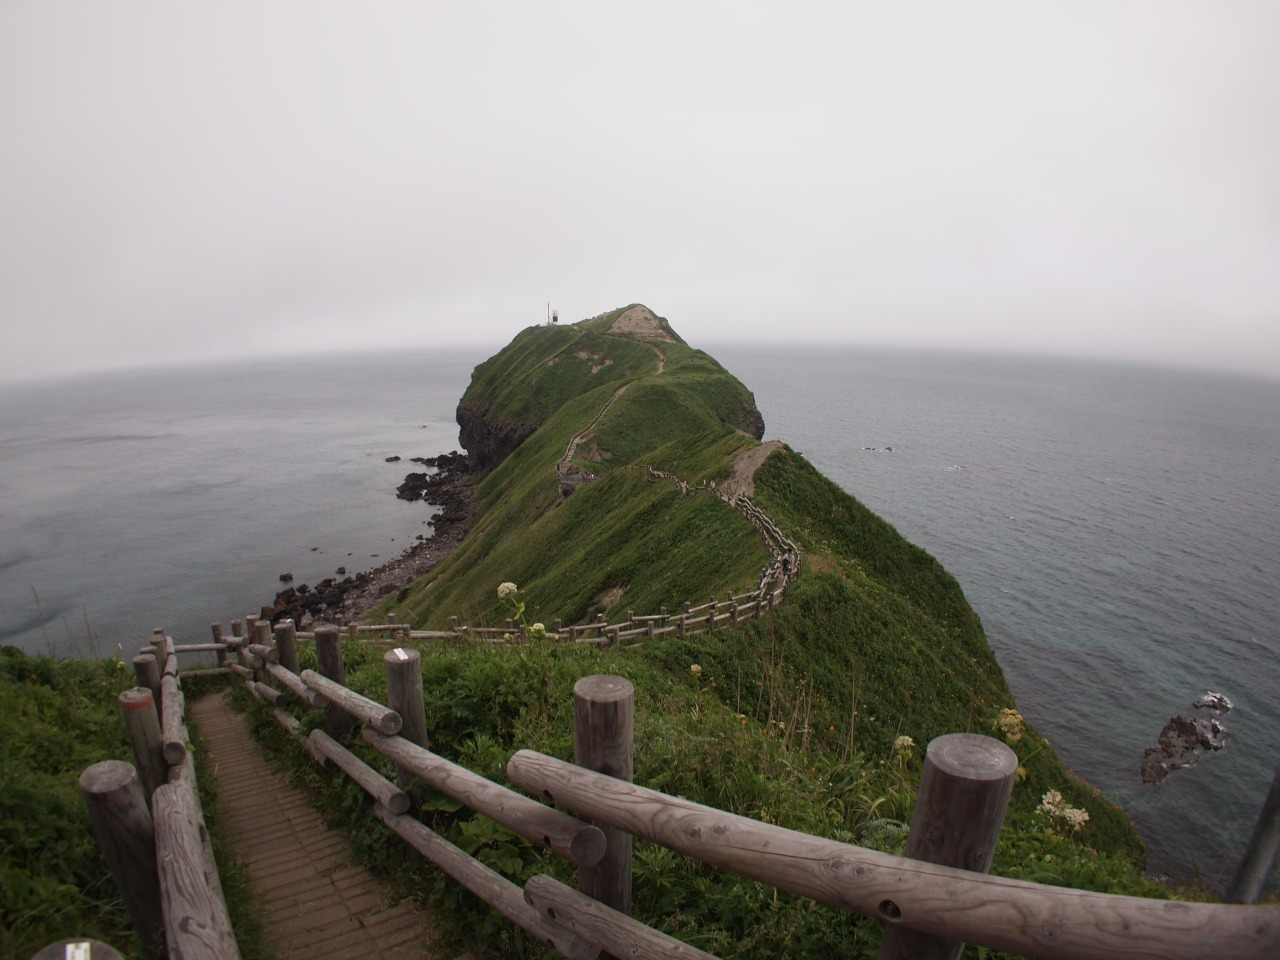 Cape Kamui is one of the most beautiful places I have seen!